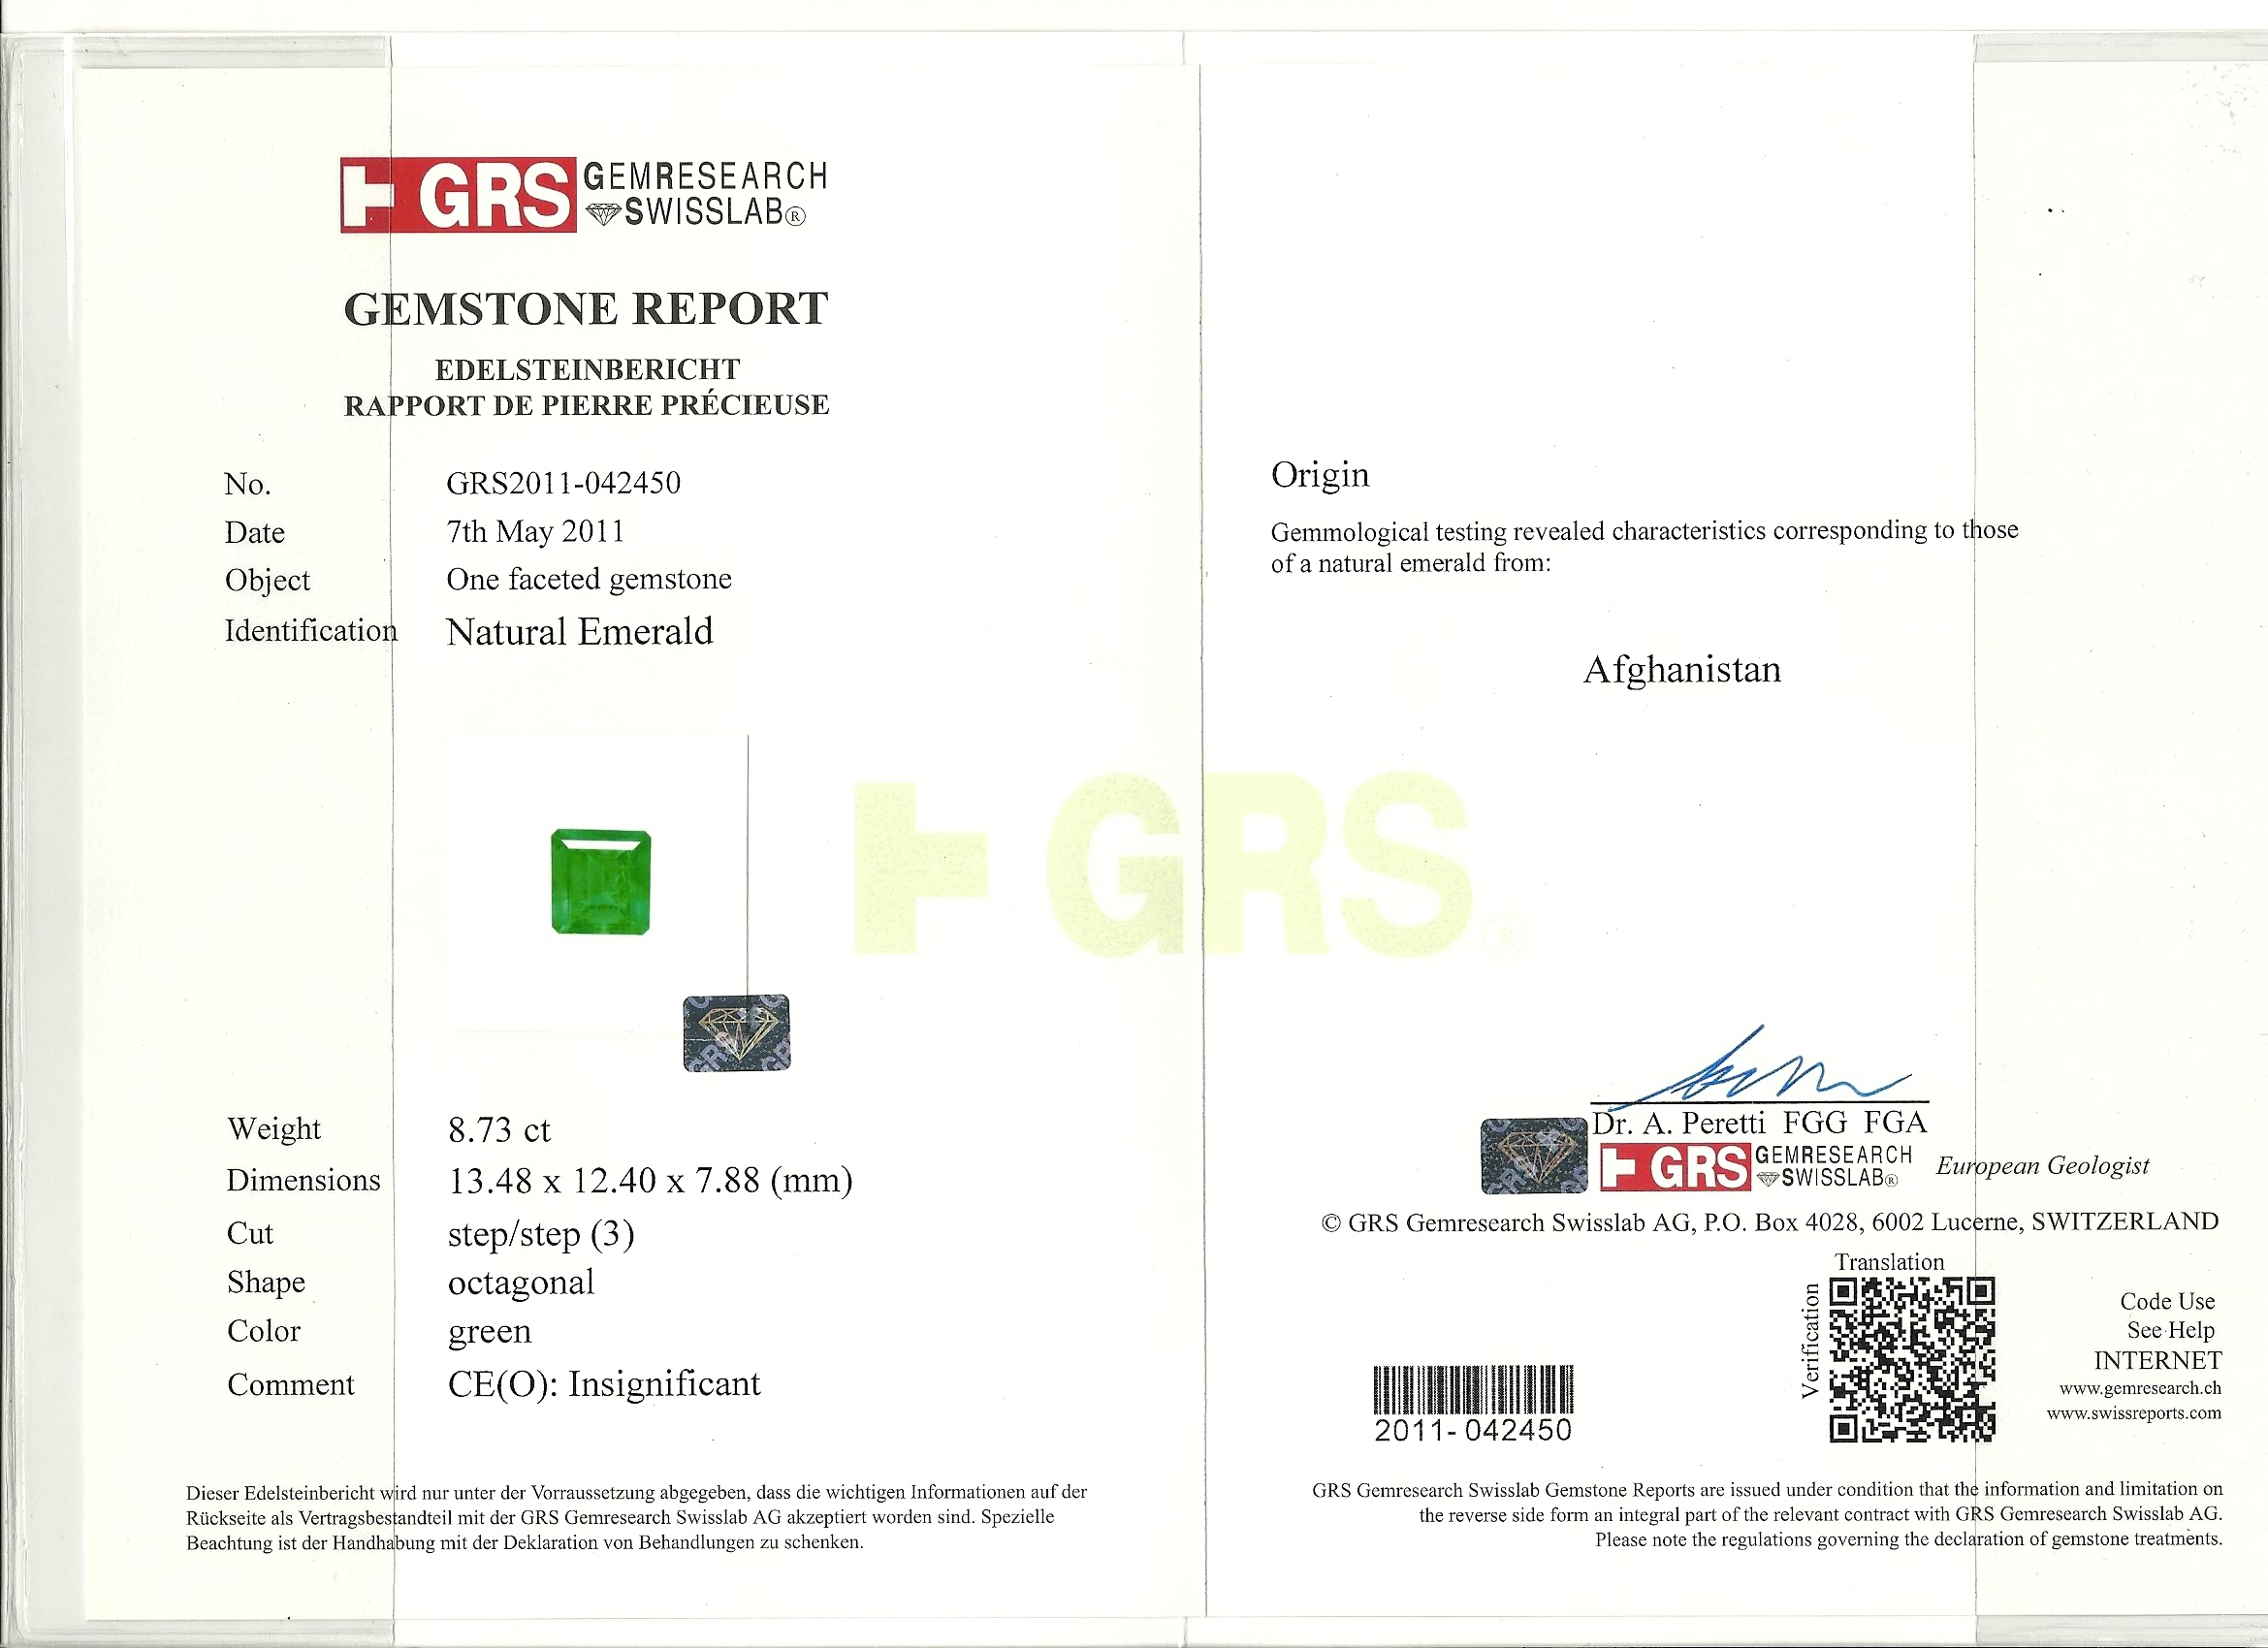 Emerald certificate issued by GRS